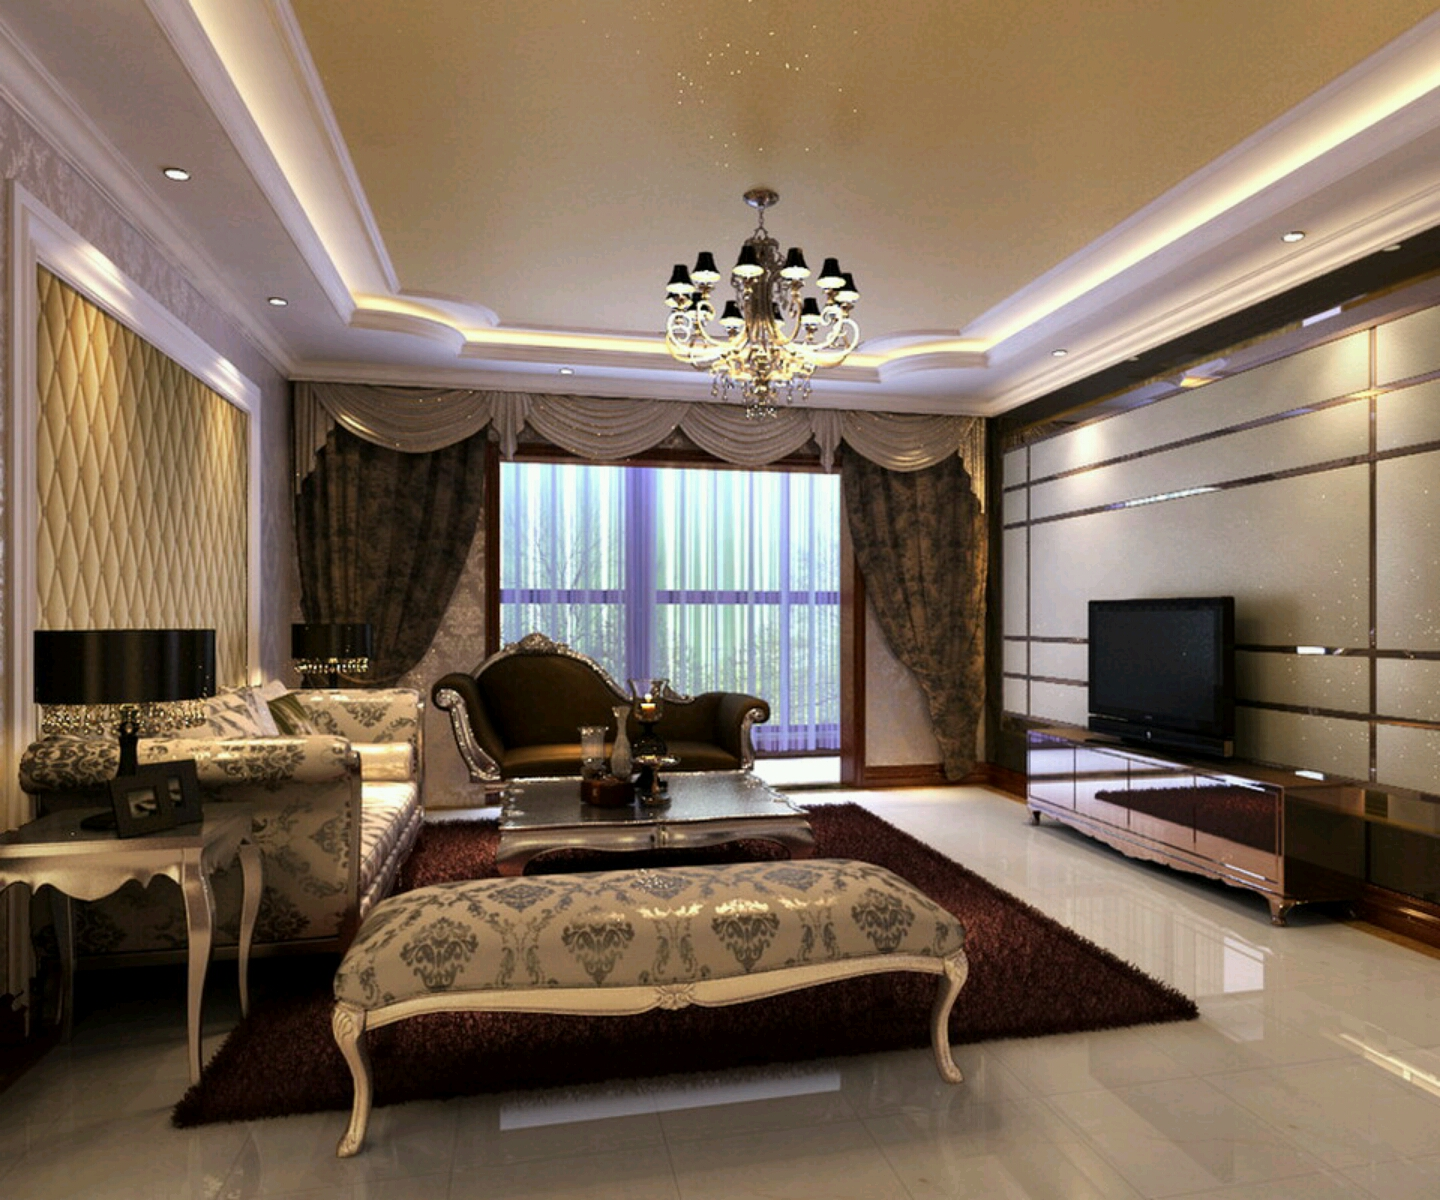 Living Room Interior Design: New Home Designs Latest.: Luxury Homes Interior Decoration